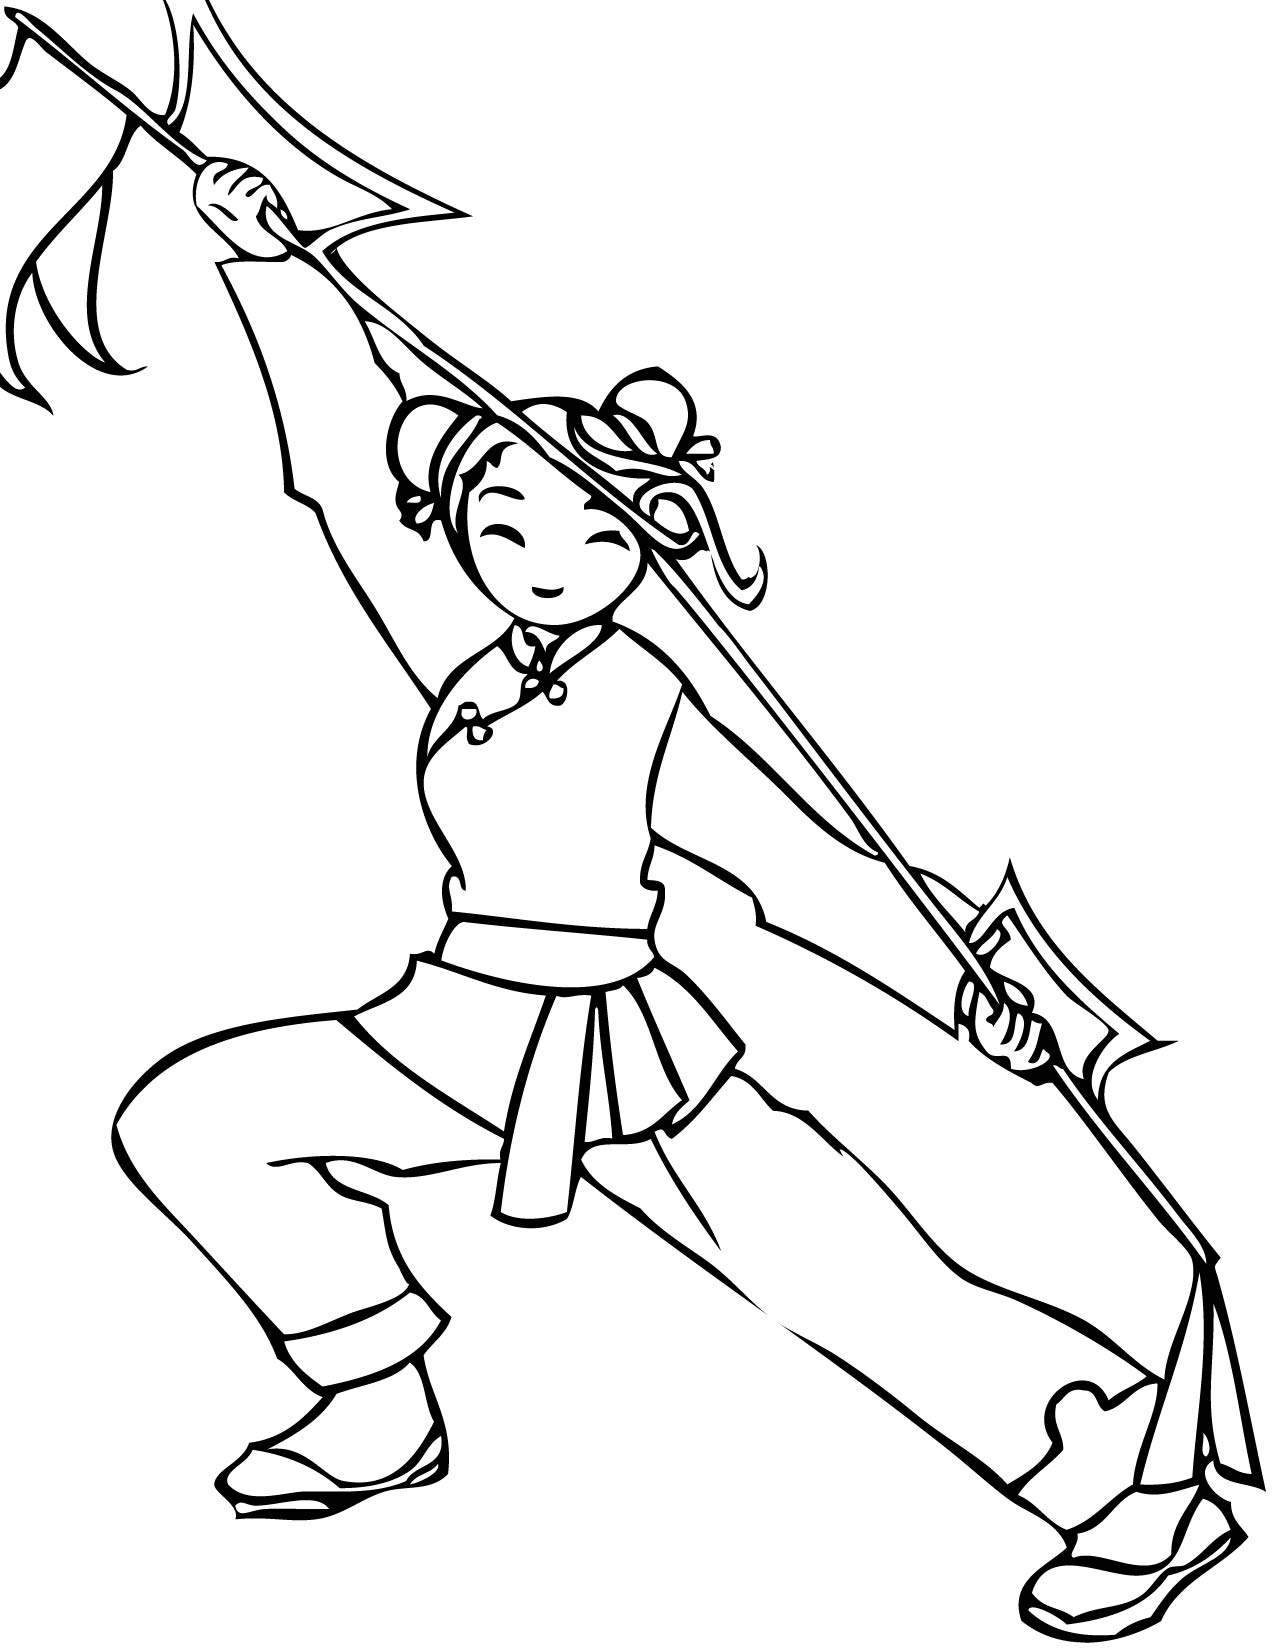 Holiday Coloring Pages Karate Page Print This Martial Arts